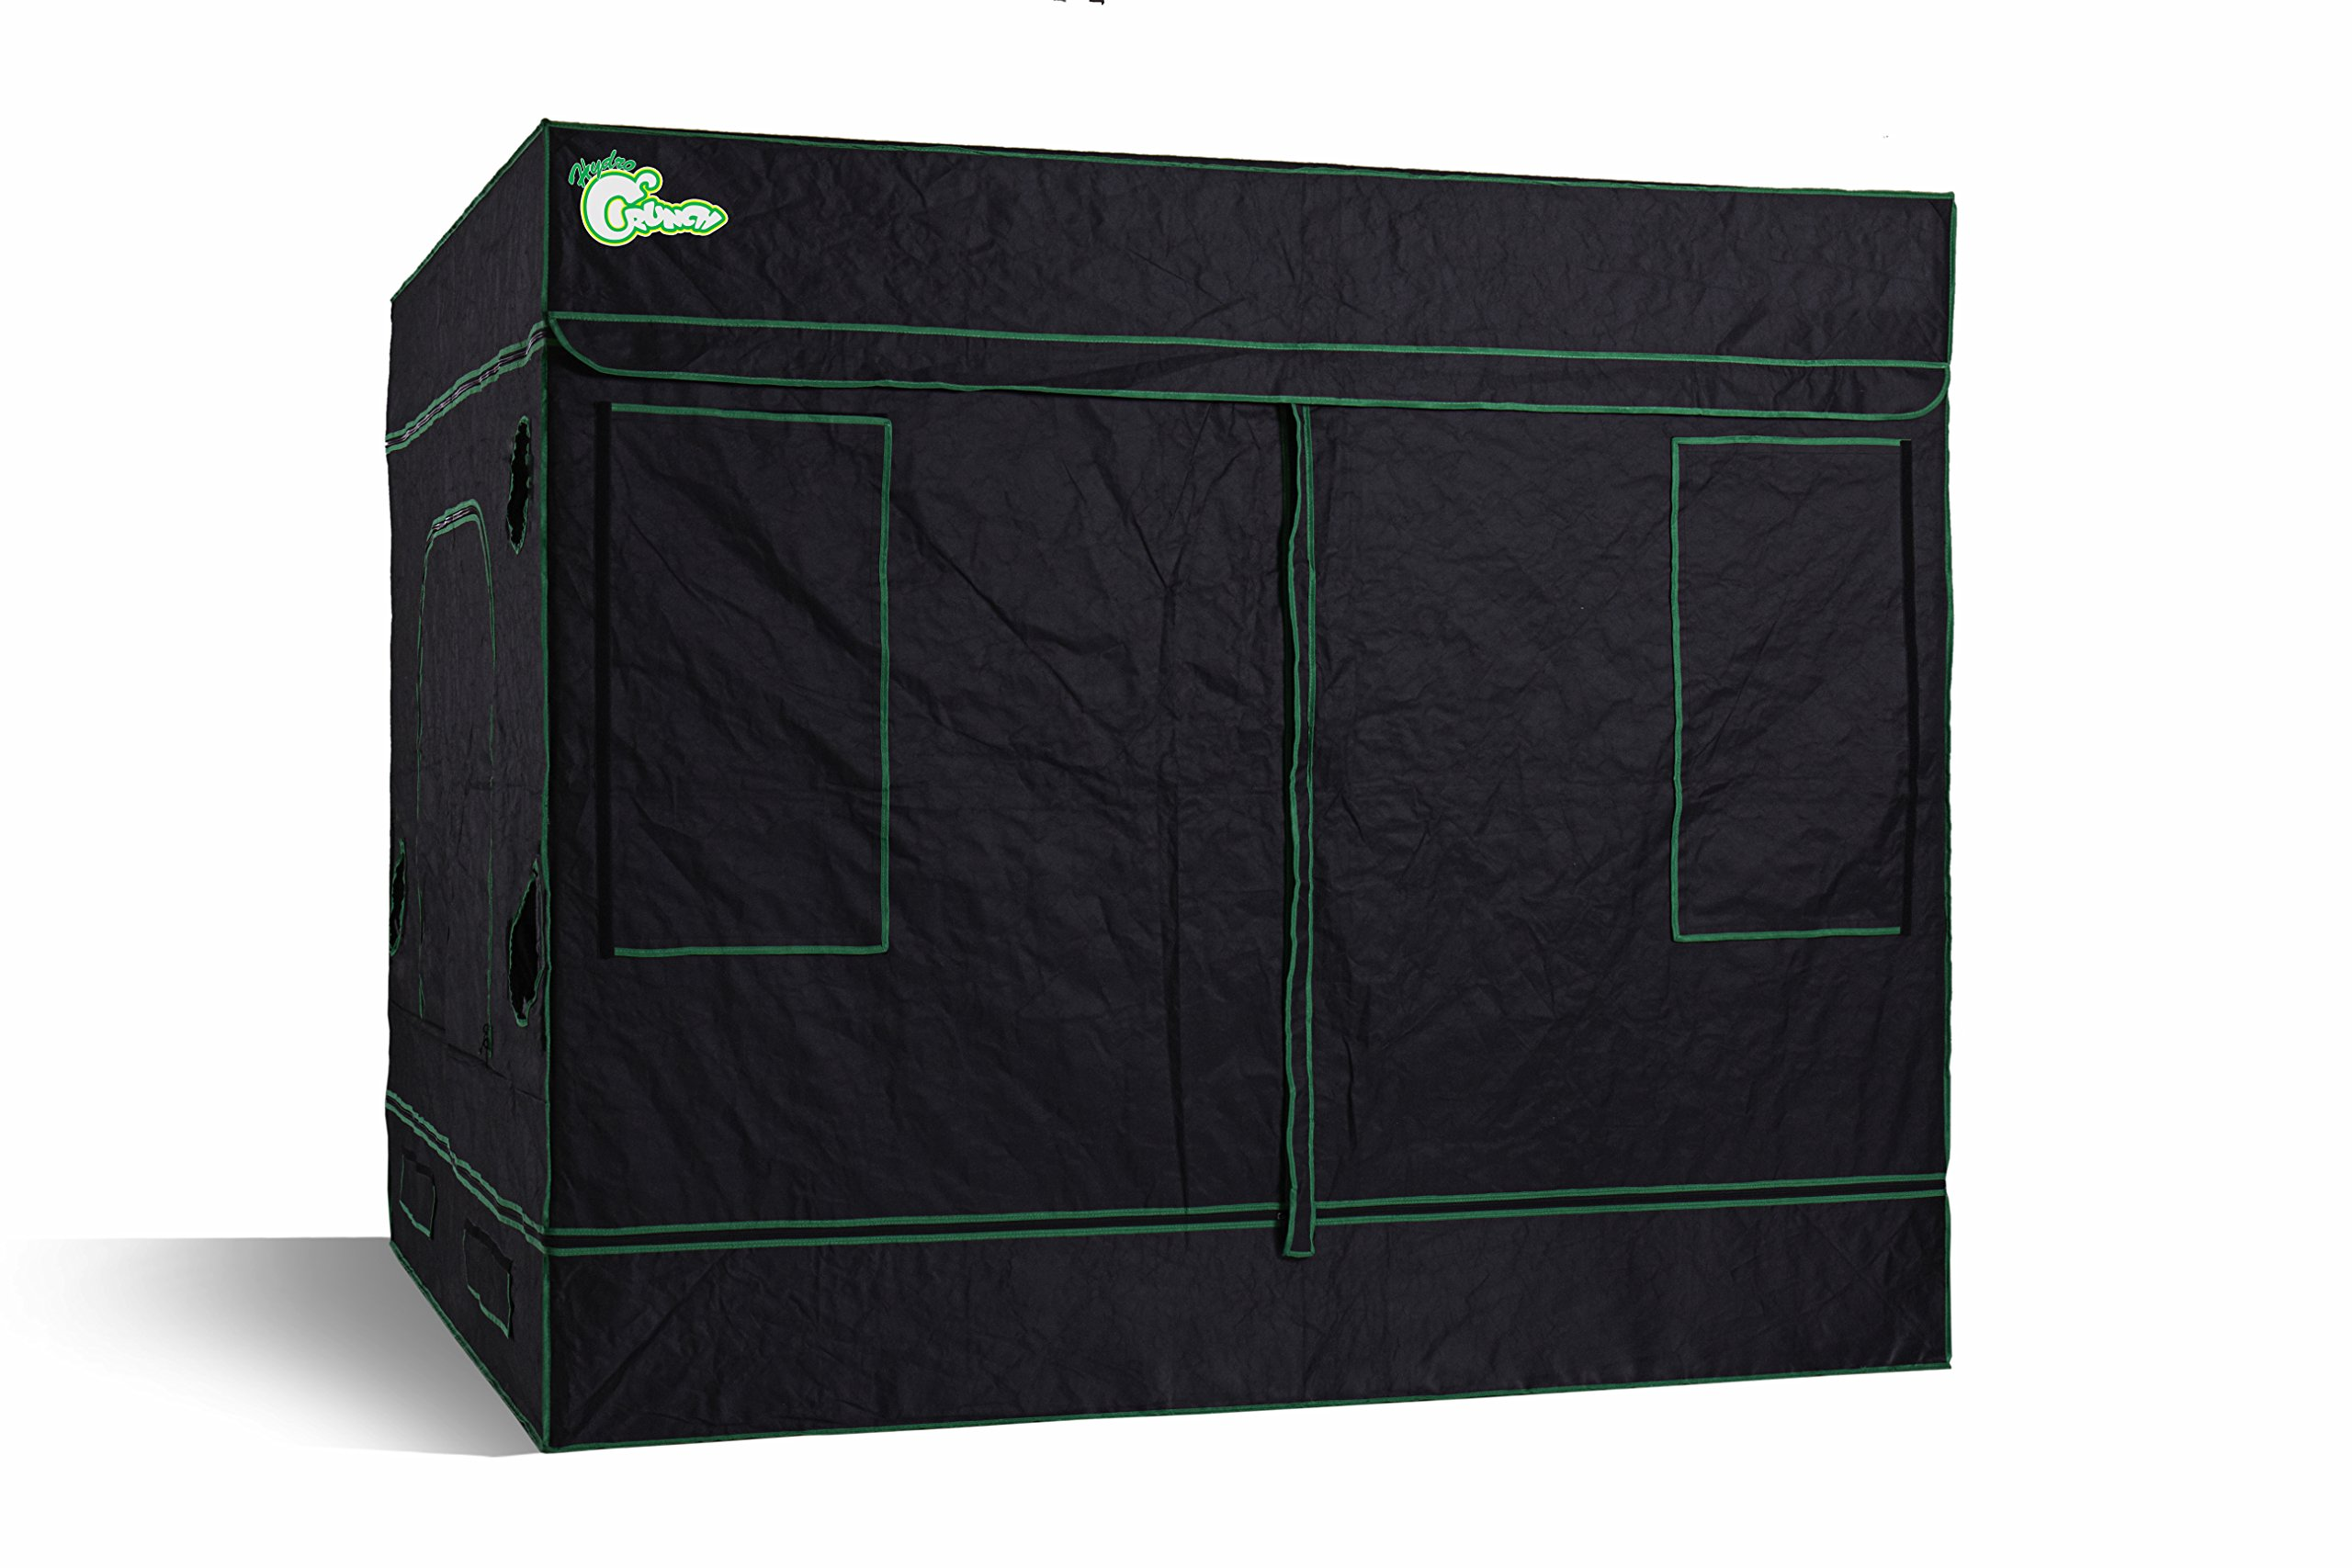 Hydro Crunch Hydroponic Grow Tent, 96'' x 96'' x 80'' by Hydro Crunch